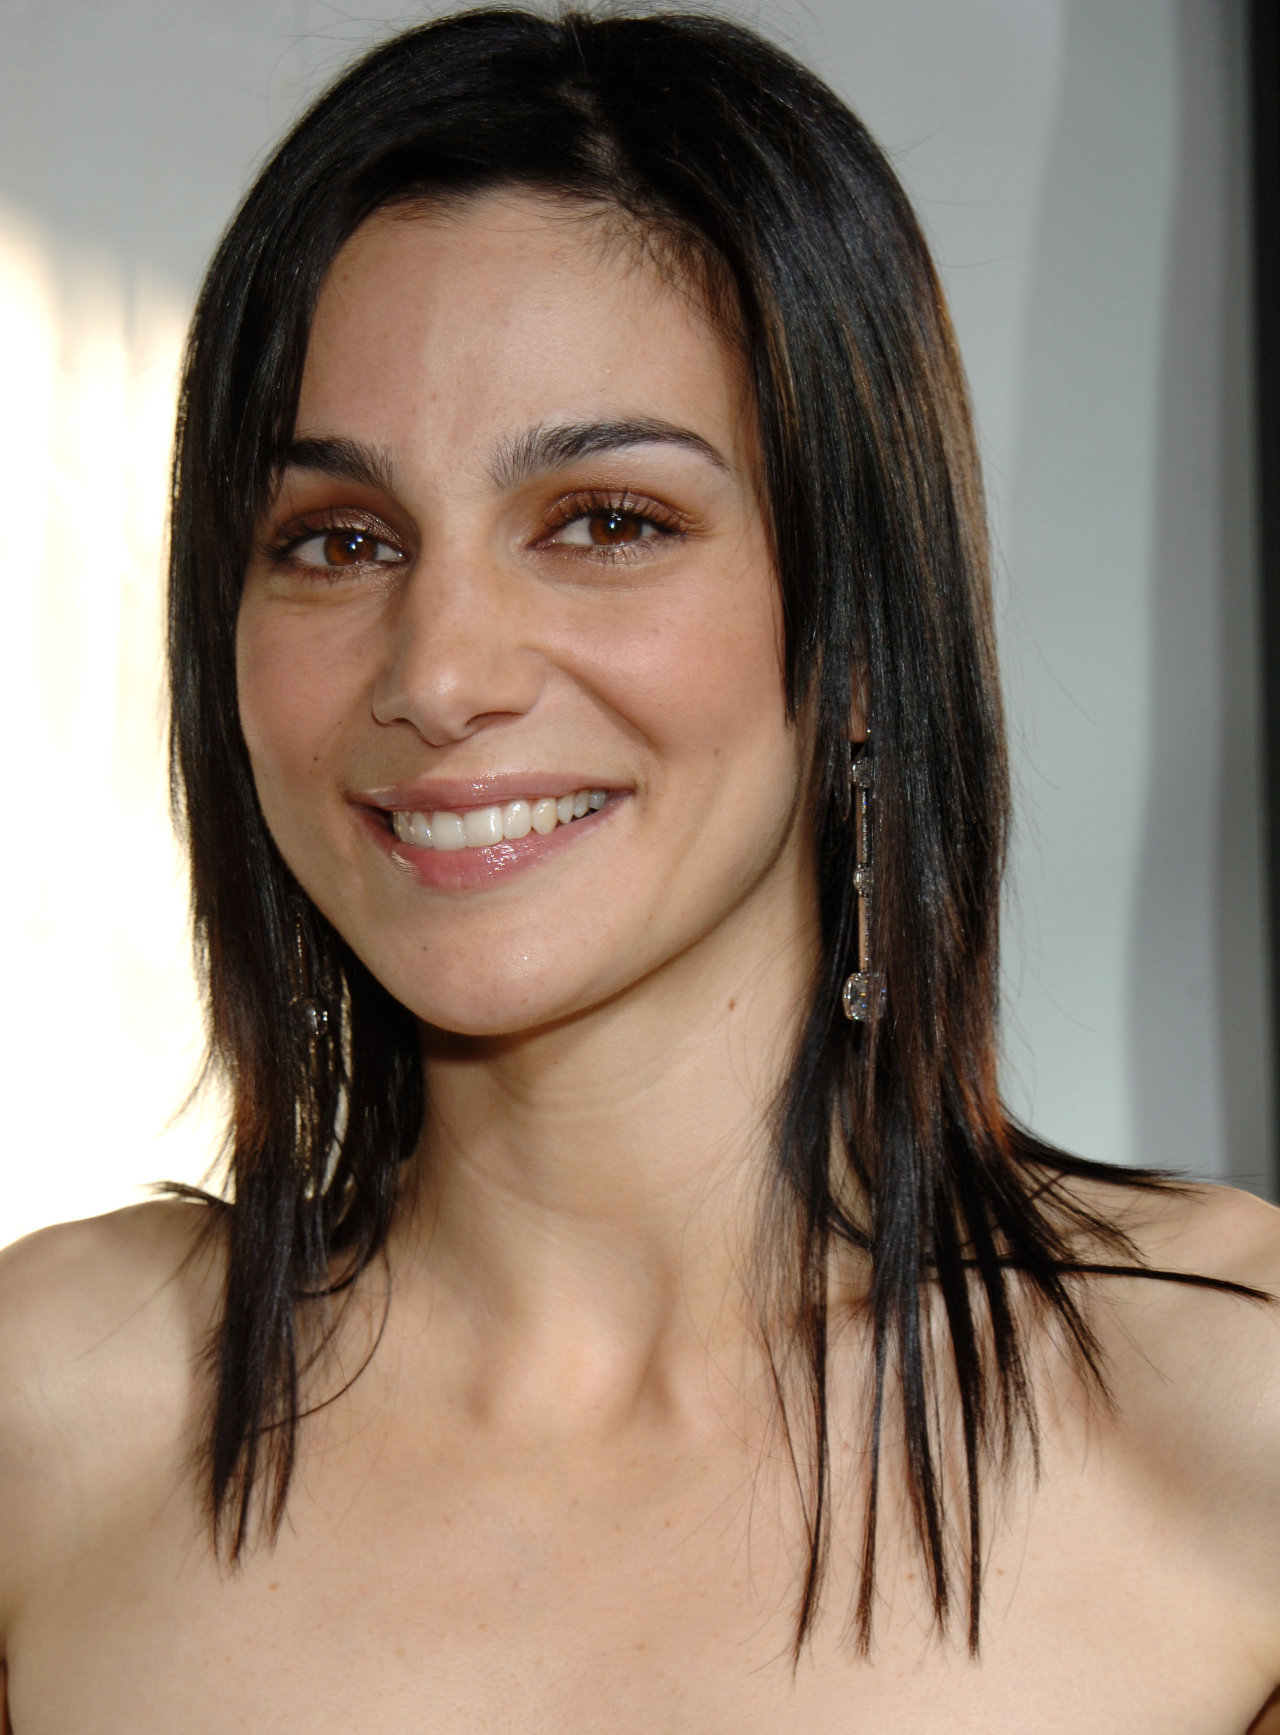 "Annie Parisse Photo by Janet Gough ""Monster-In-Law"" Los Angeles Premiere at the Mann National Theatre April 29, 2005 - Westwood, California CelebrityPhoto.com P.O. Box 1560 - Beverly Hills, CA. 90213-1560 TEL# (310) 786-7700 FAX (310) 777-5455"